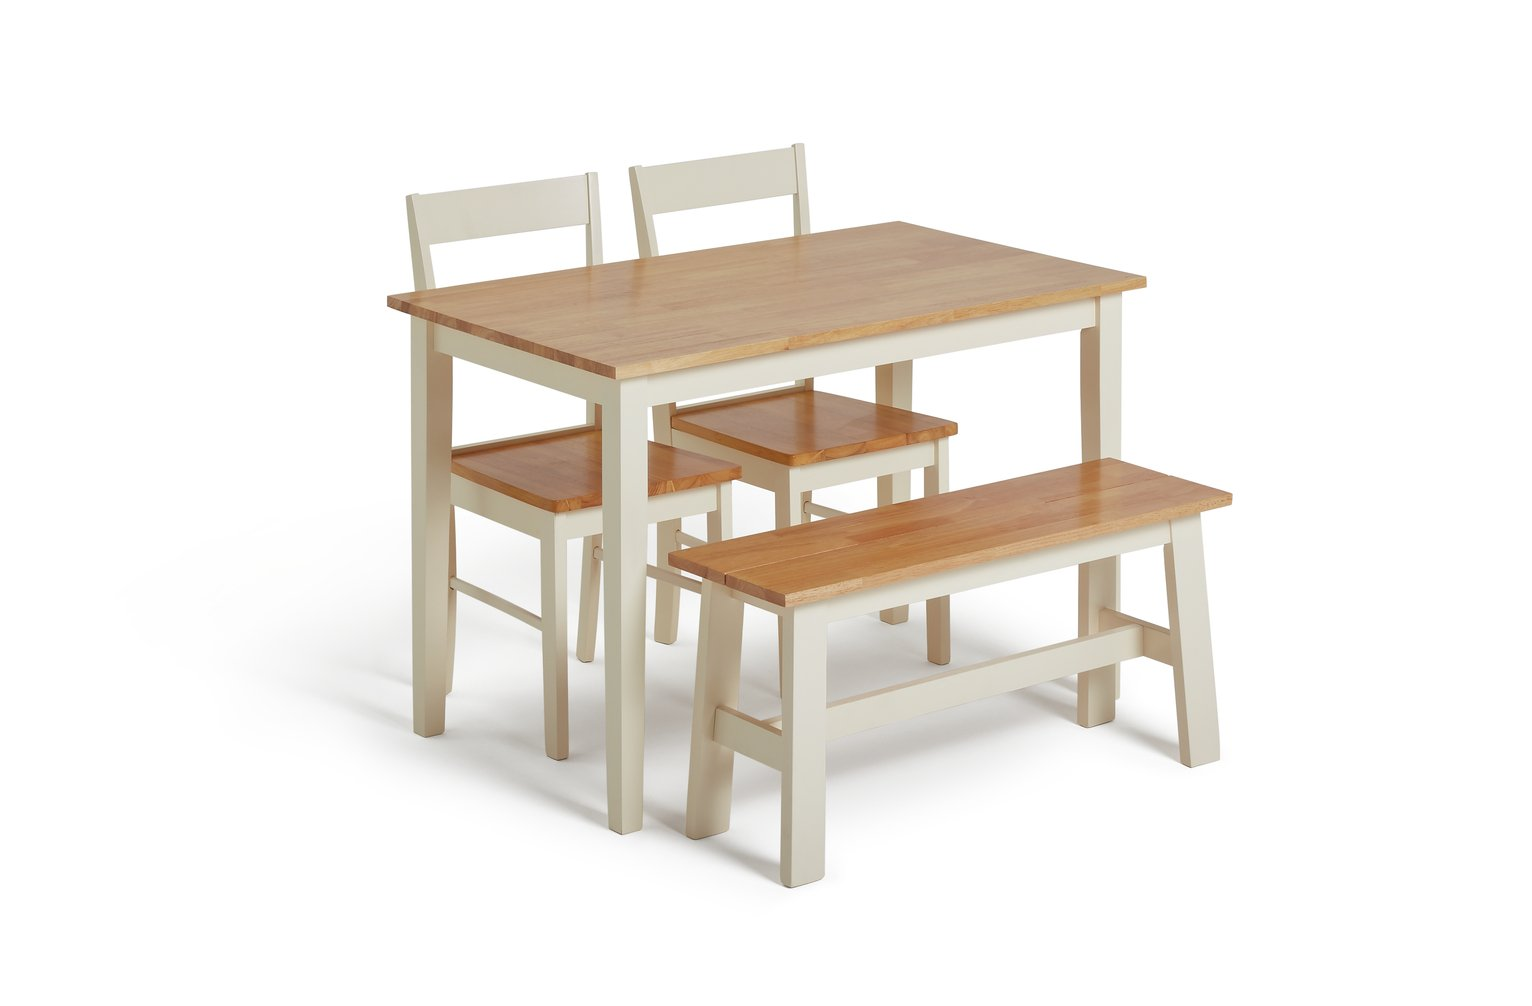 4044952 r set  main768  u0026w u003d620 u0026h u003d620 buy collection chicago solid wood table bench  u0026 2 chairs at argos      rh   argos co uk